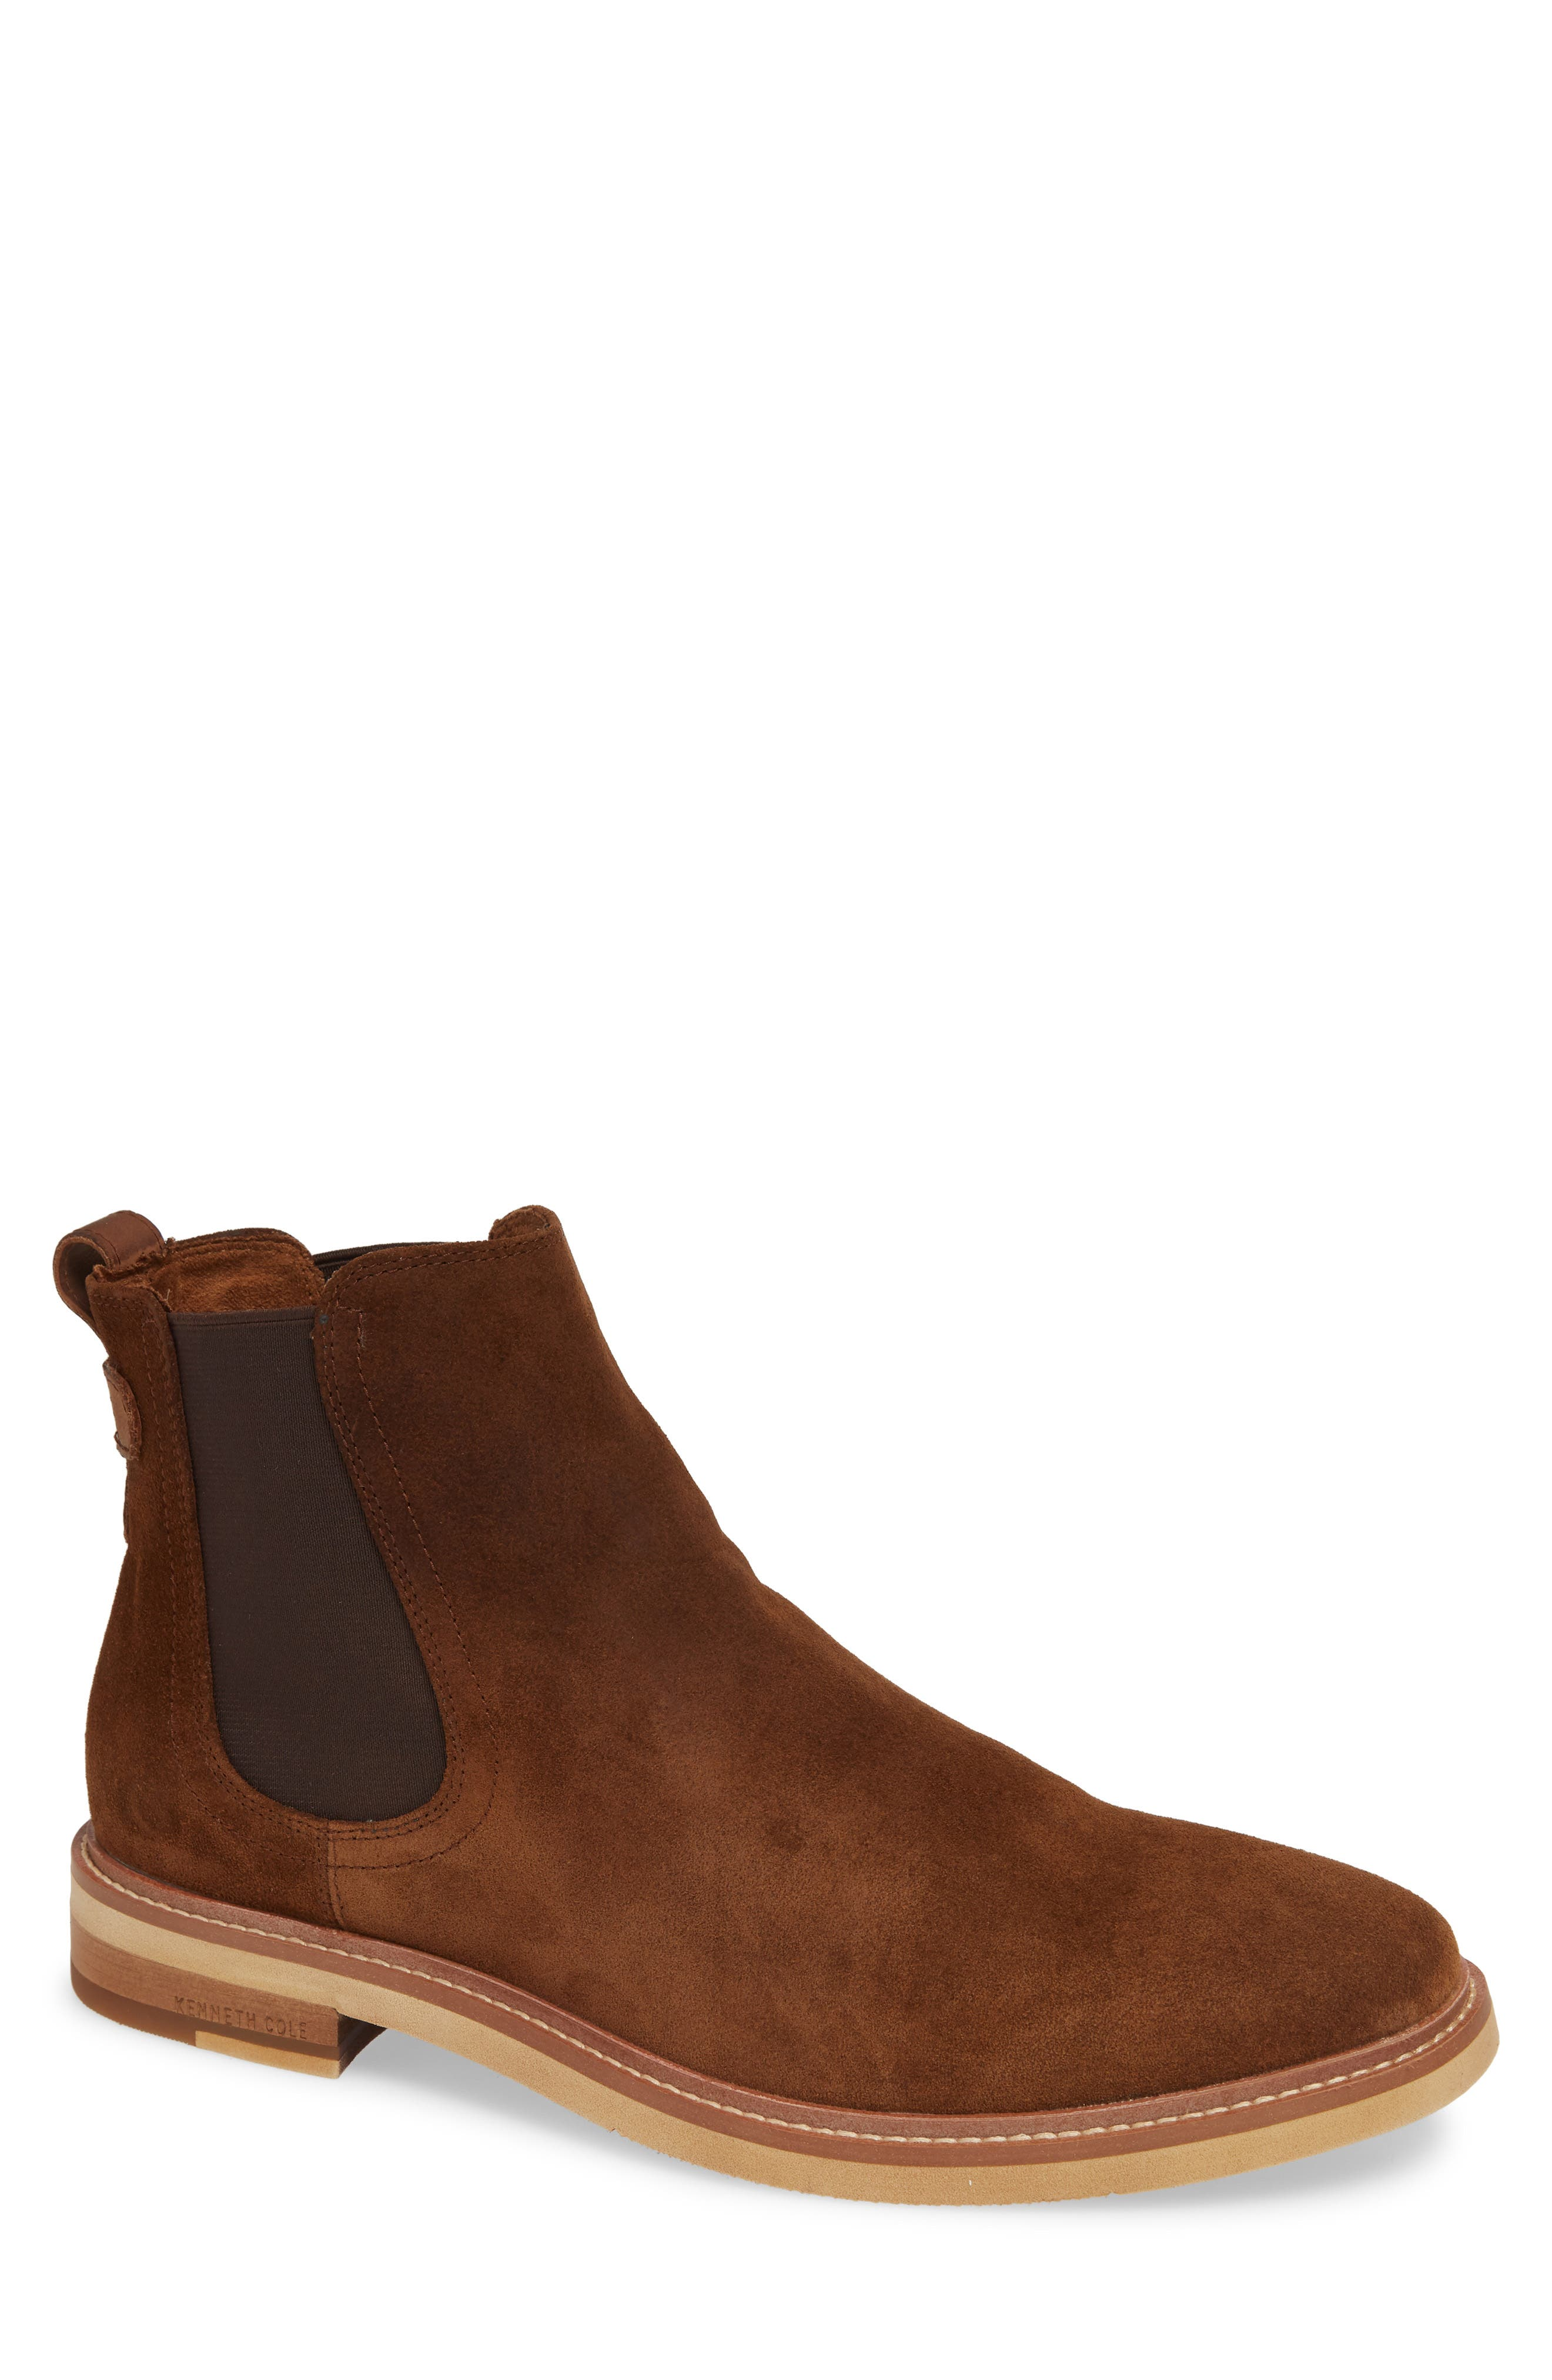 Whistler Mid Chelsea Boot, Main, color, TOBACCO SUEDE